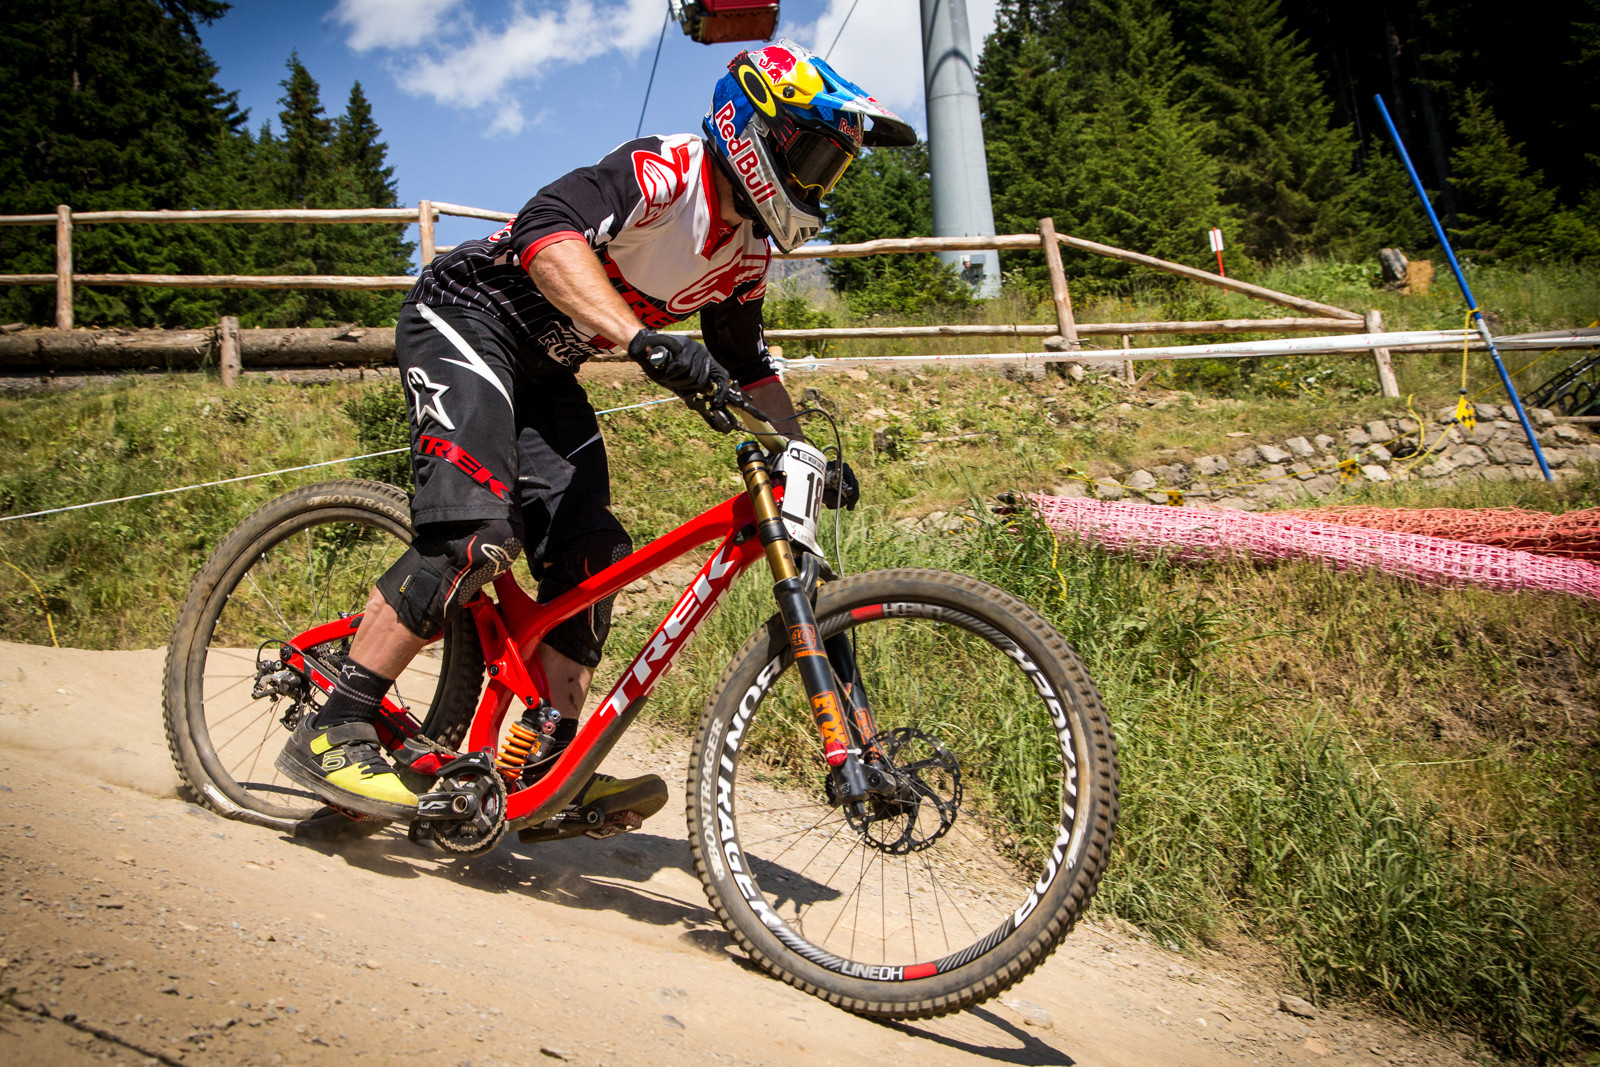 G-Out Project, Lenzerheide World Cup - Brook MacDonald - G-Out Project - Lenzerheide World Cup - Mountain Biking Pictures - Vital MTB